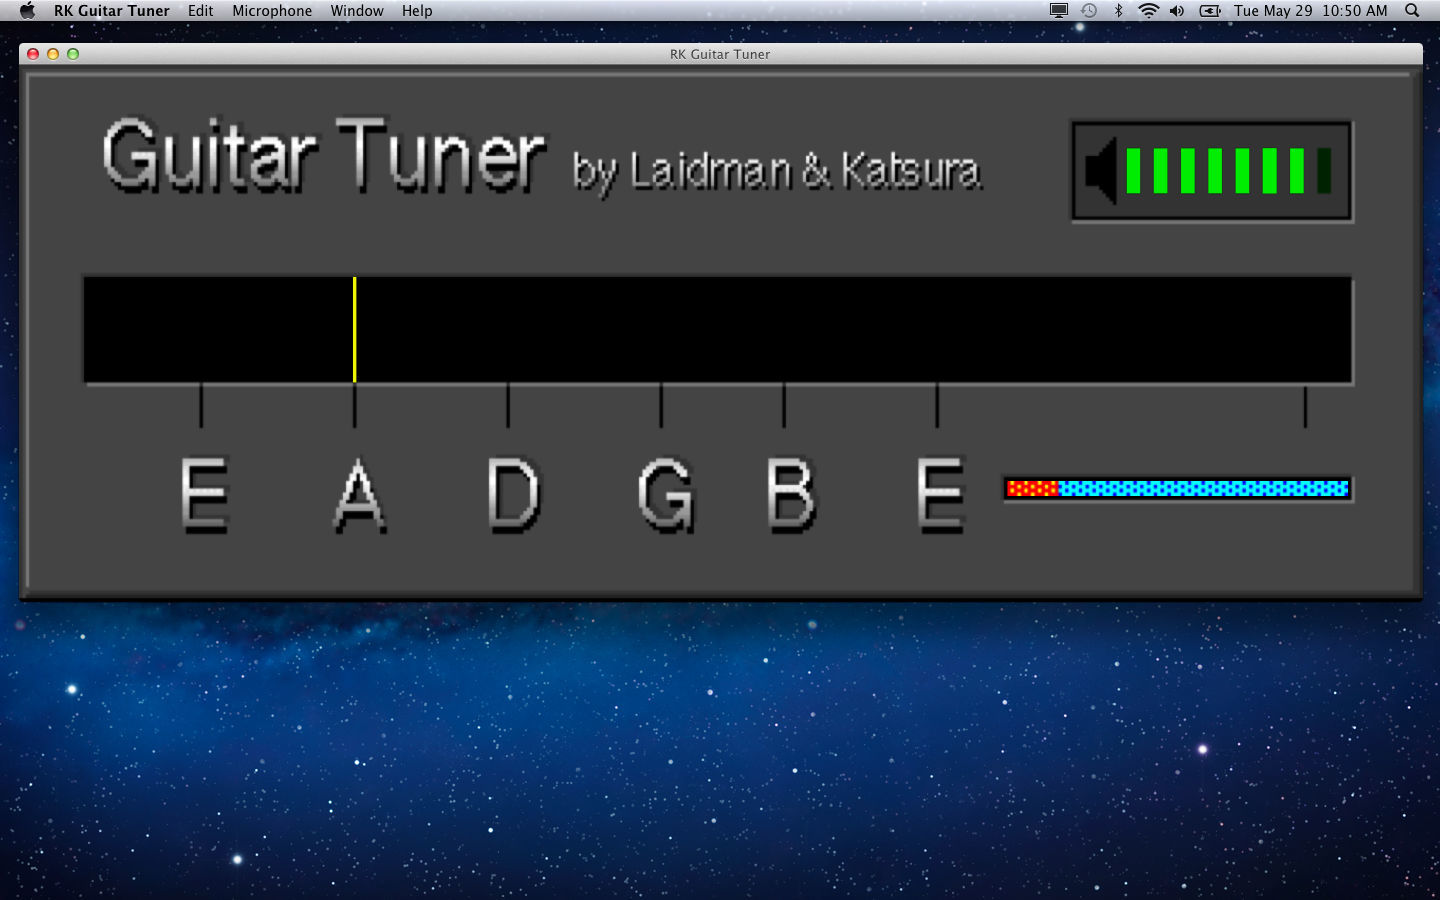 Screenshot 2 for RK Guitar Tuner